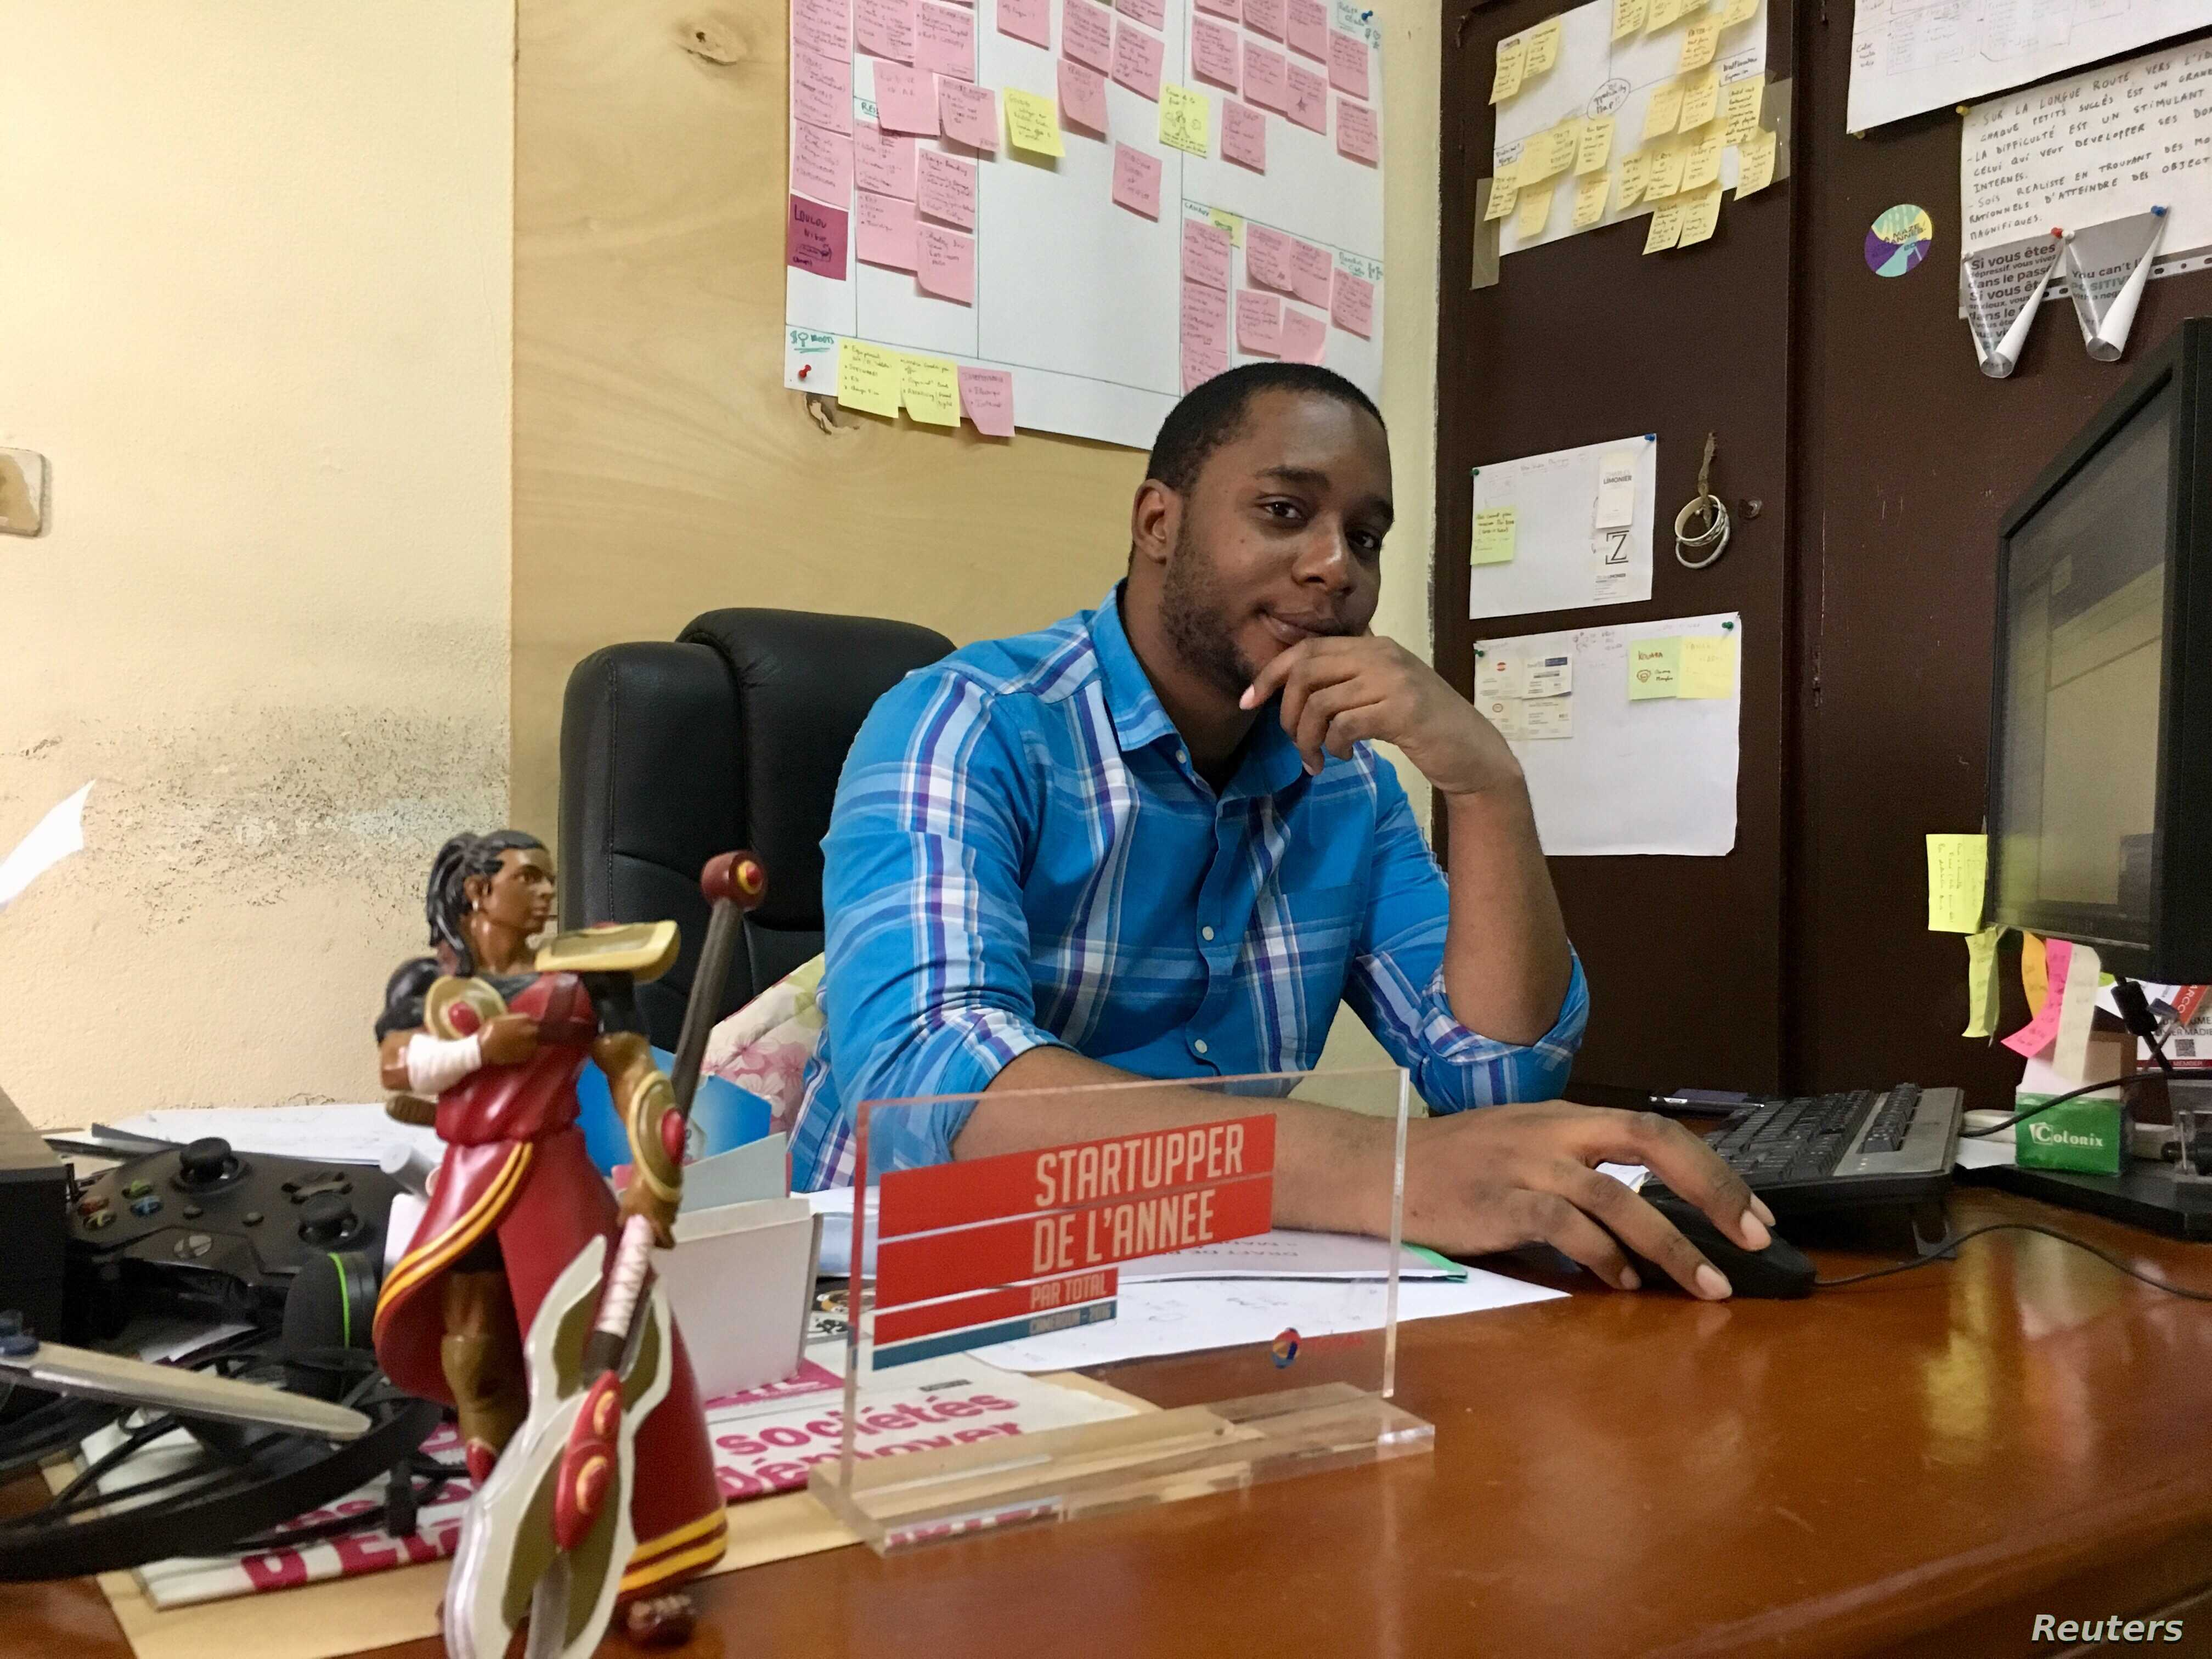 Kiro'o Games Games Founder and Chief Executive Officer Olivier Madiba in Kiro'o headquarters, Yaounde, Cameroon, Aug. 13, 2018.